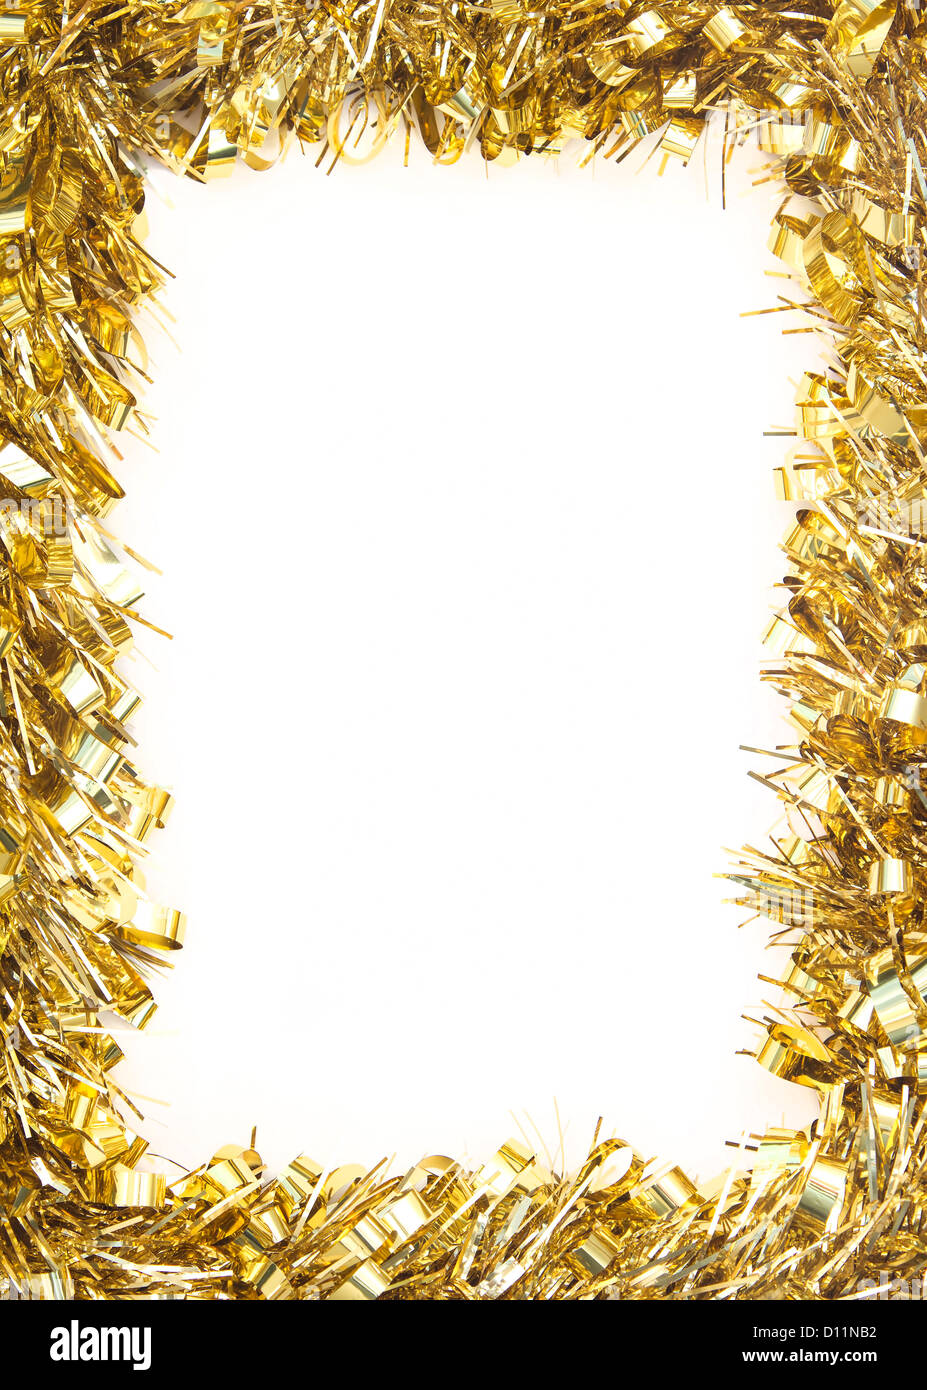 Gold Christmas tinsel garland, forming a rectangular border on white background - Stock Image